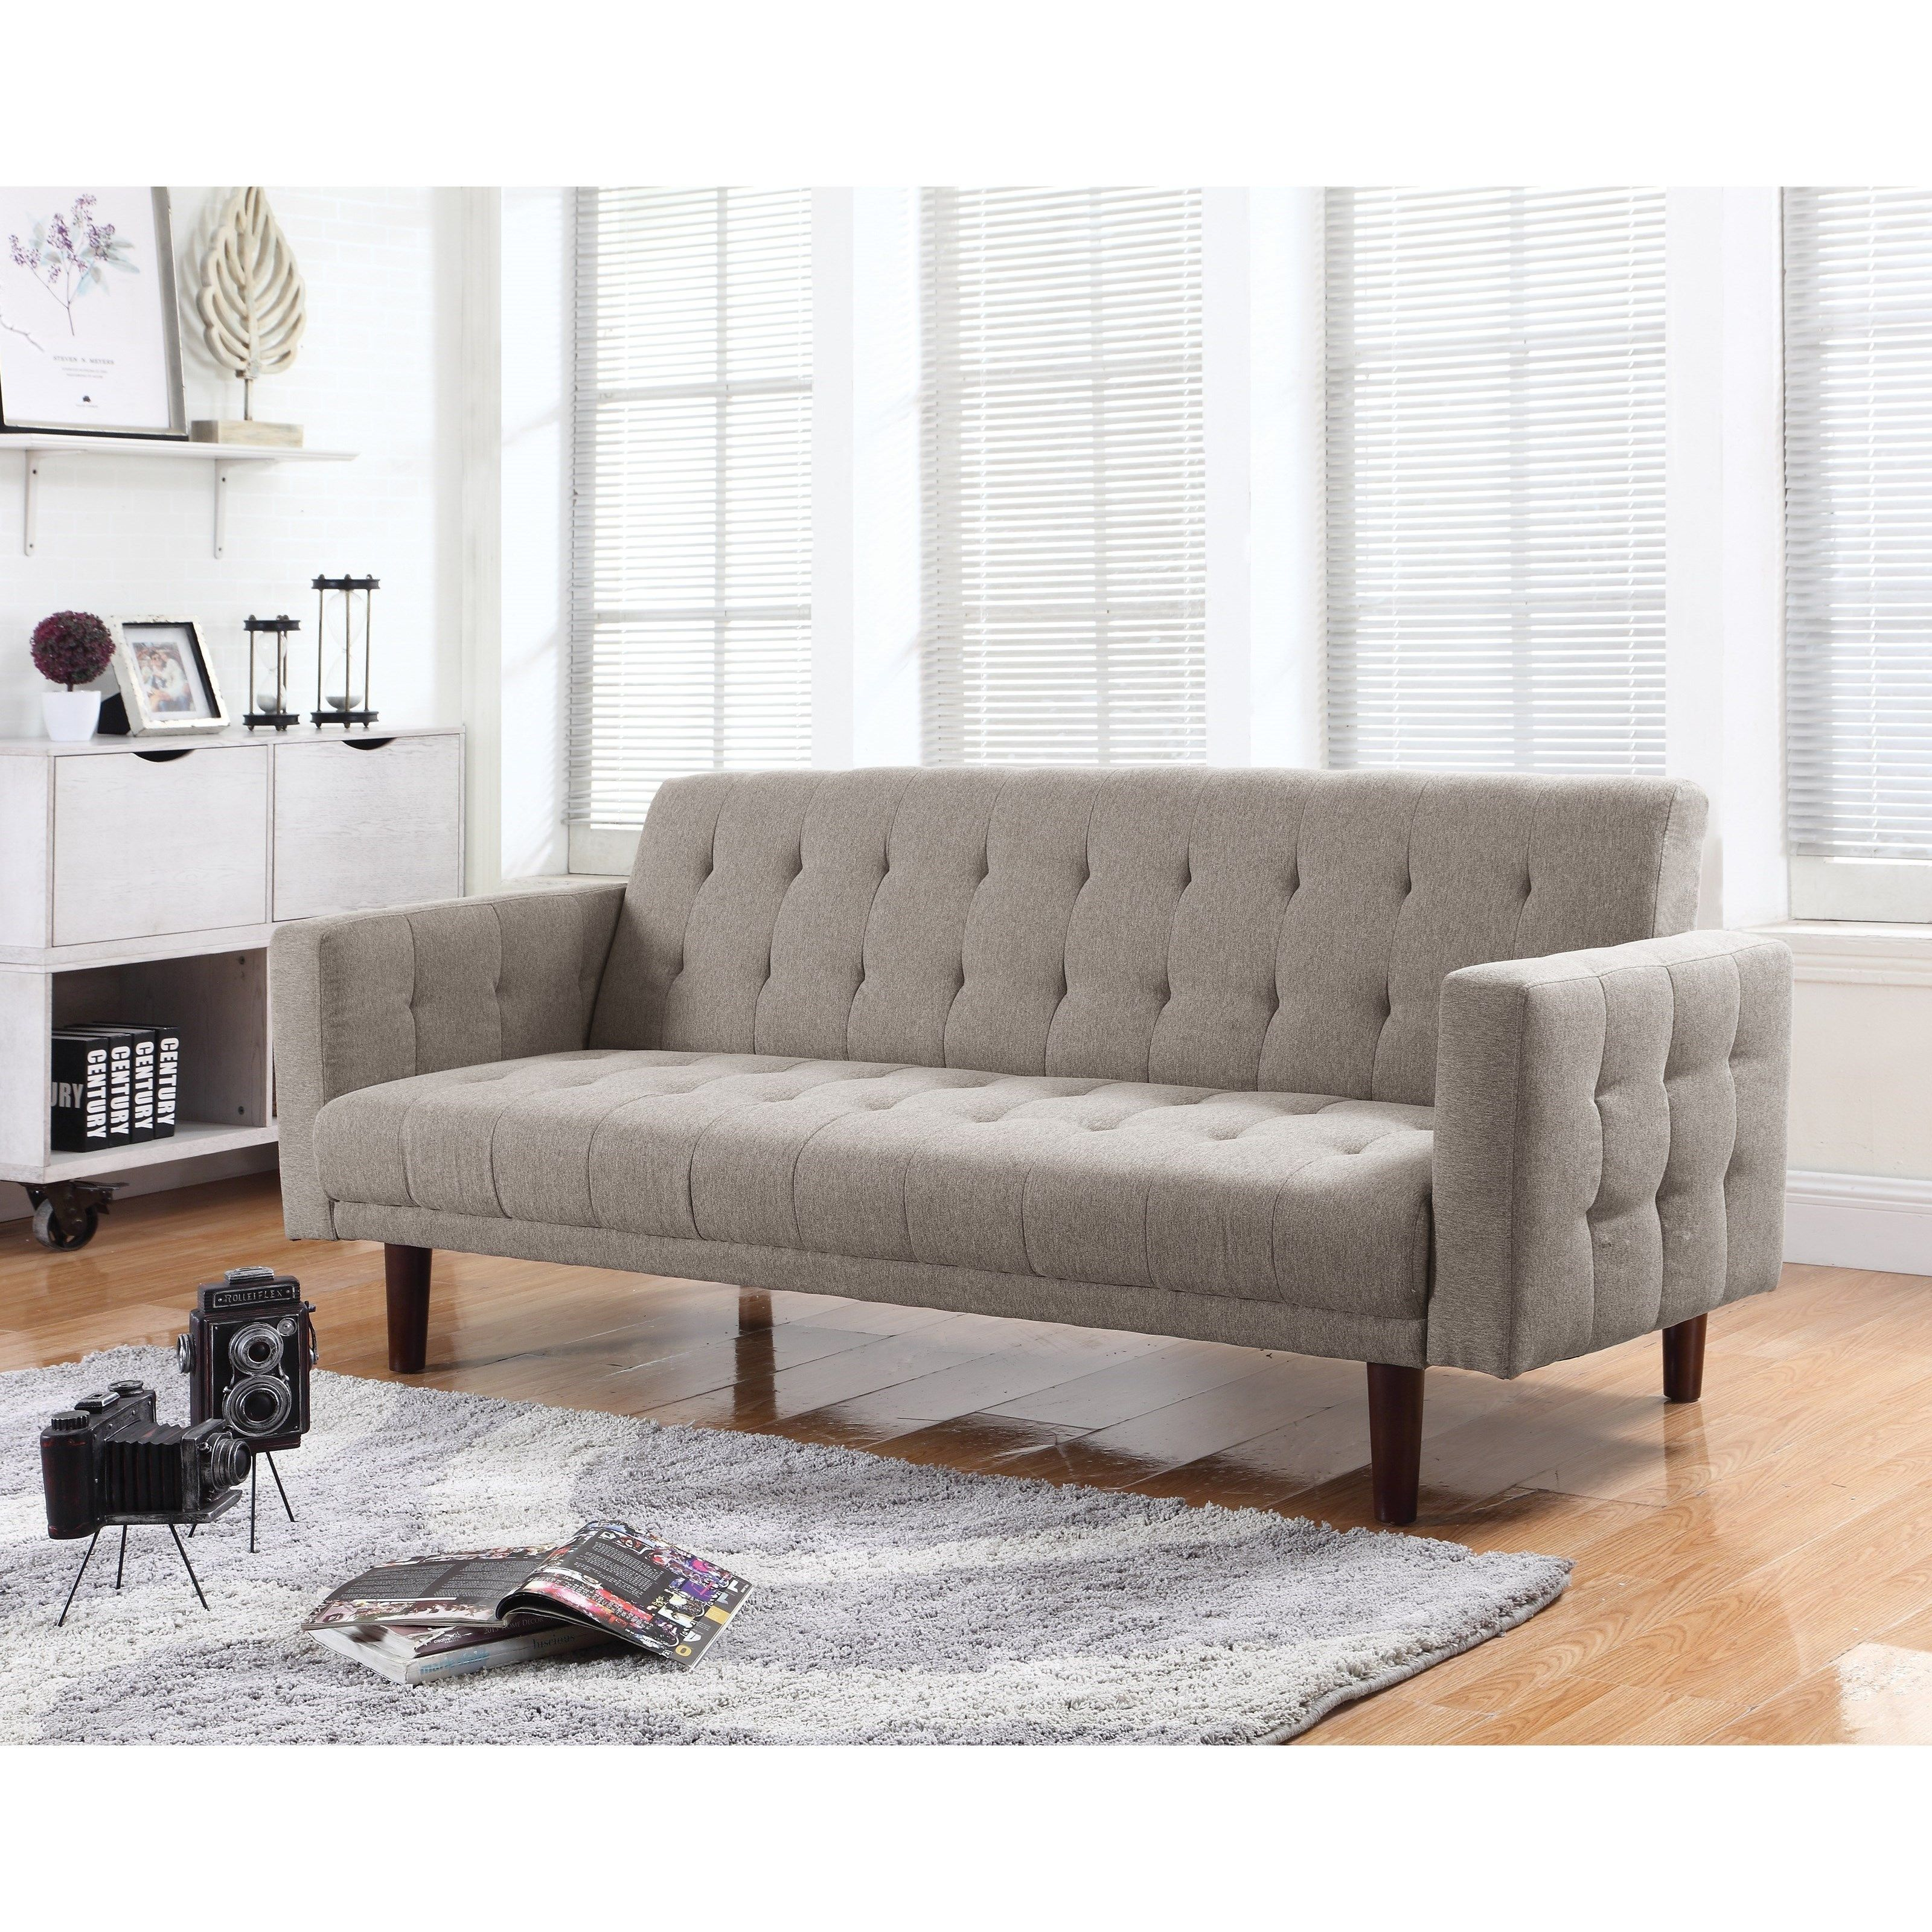 Coaster Futons On Tufted Sofa Bed With Chenille Upholstery Fine Furniture